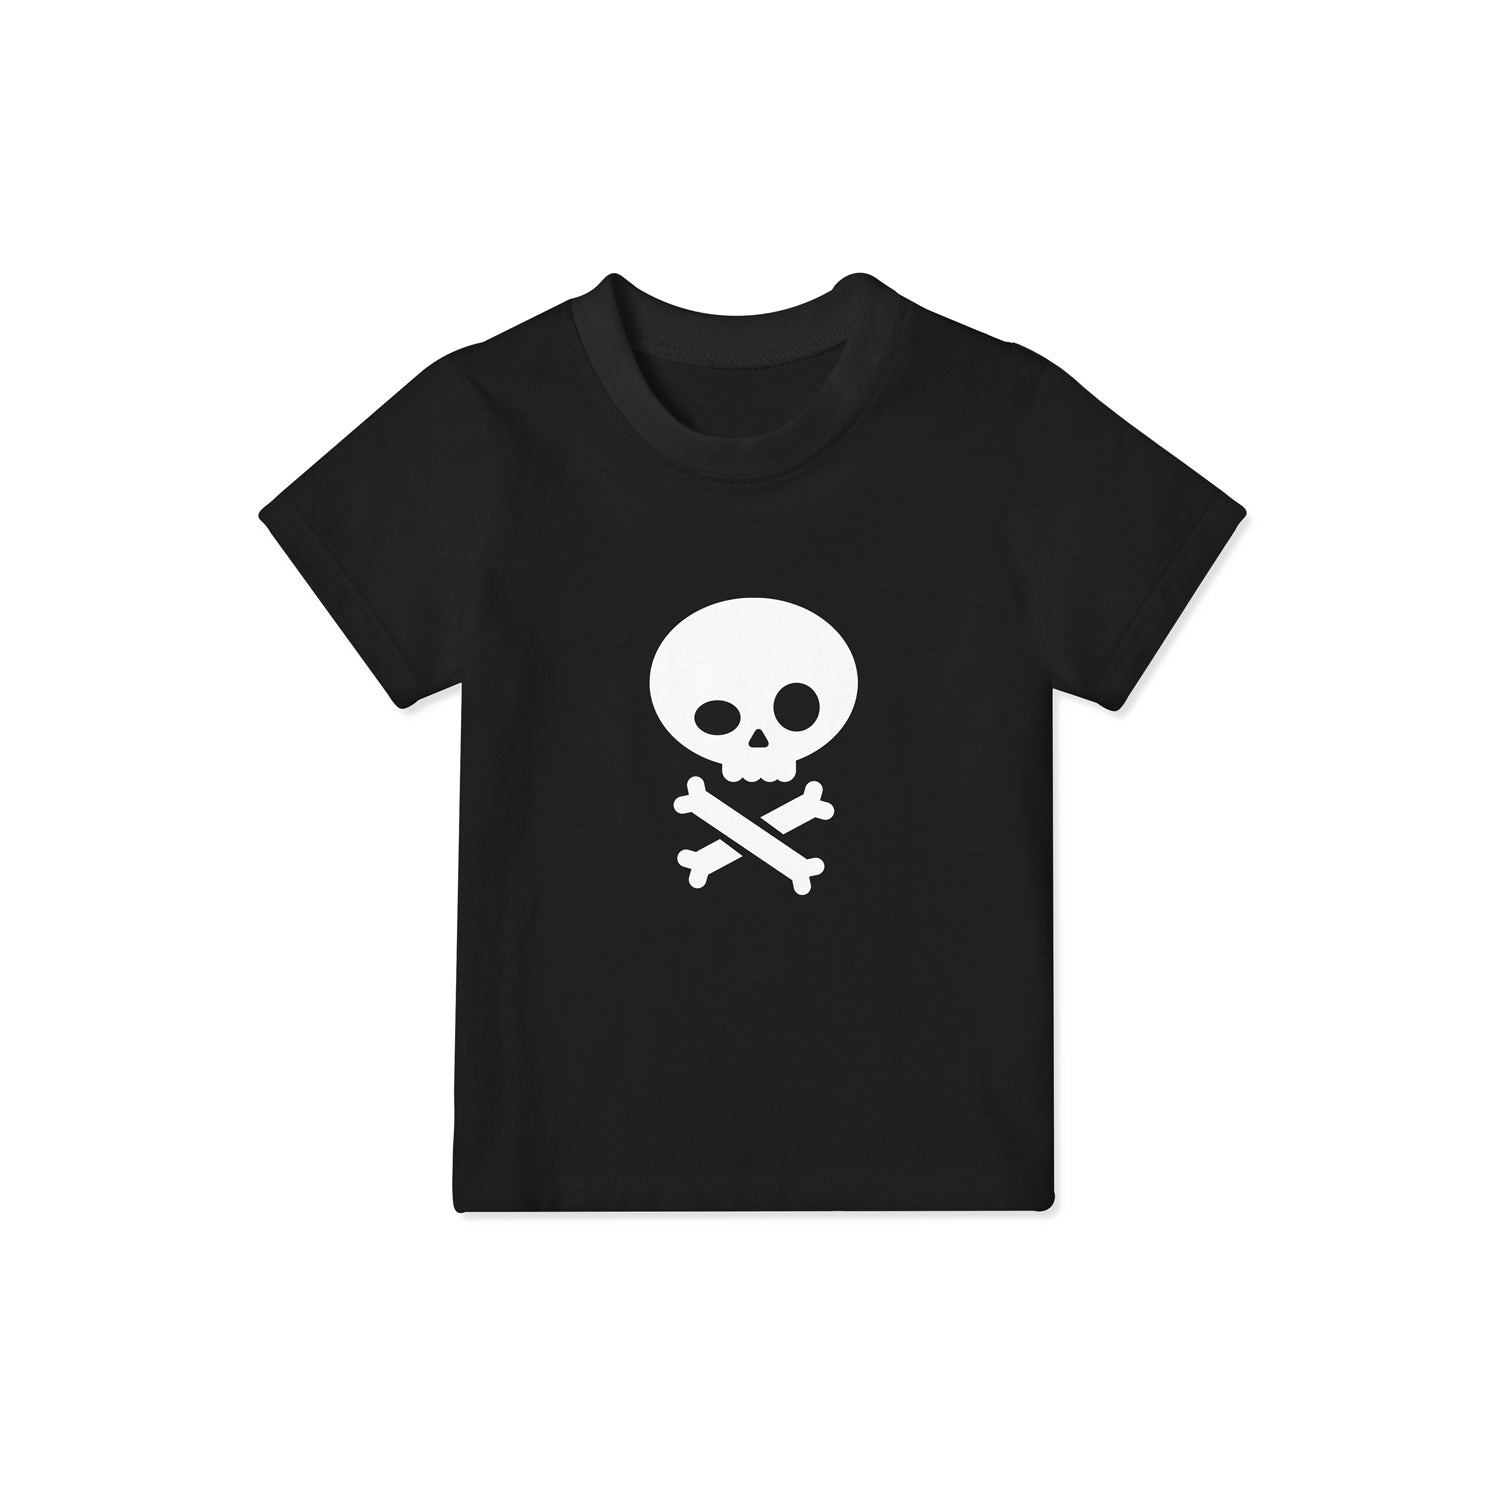 black t shirt for children with pirate skull and crossbones design